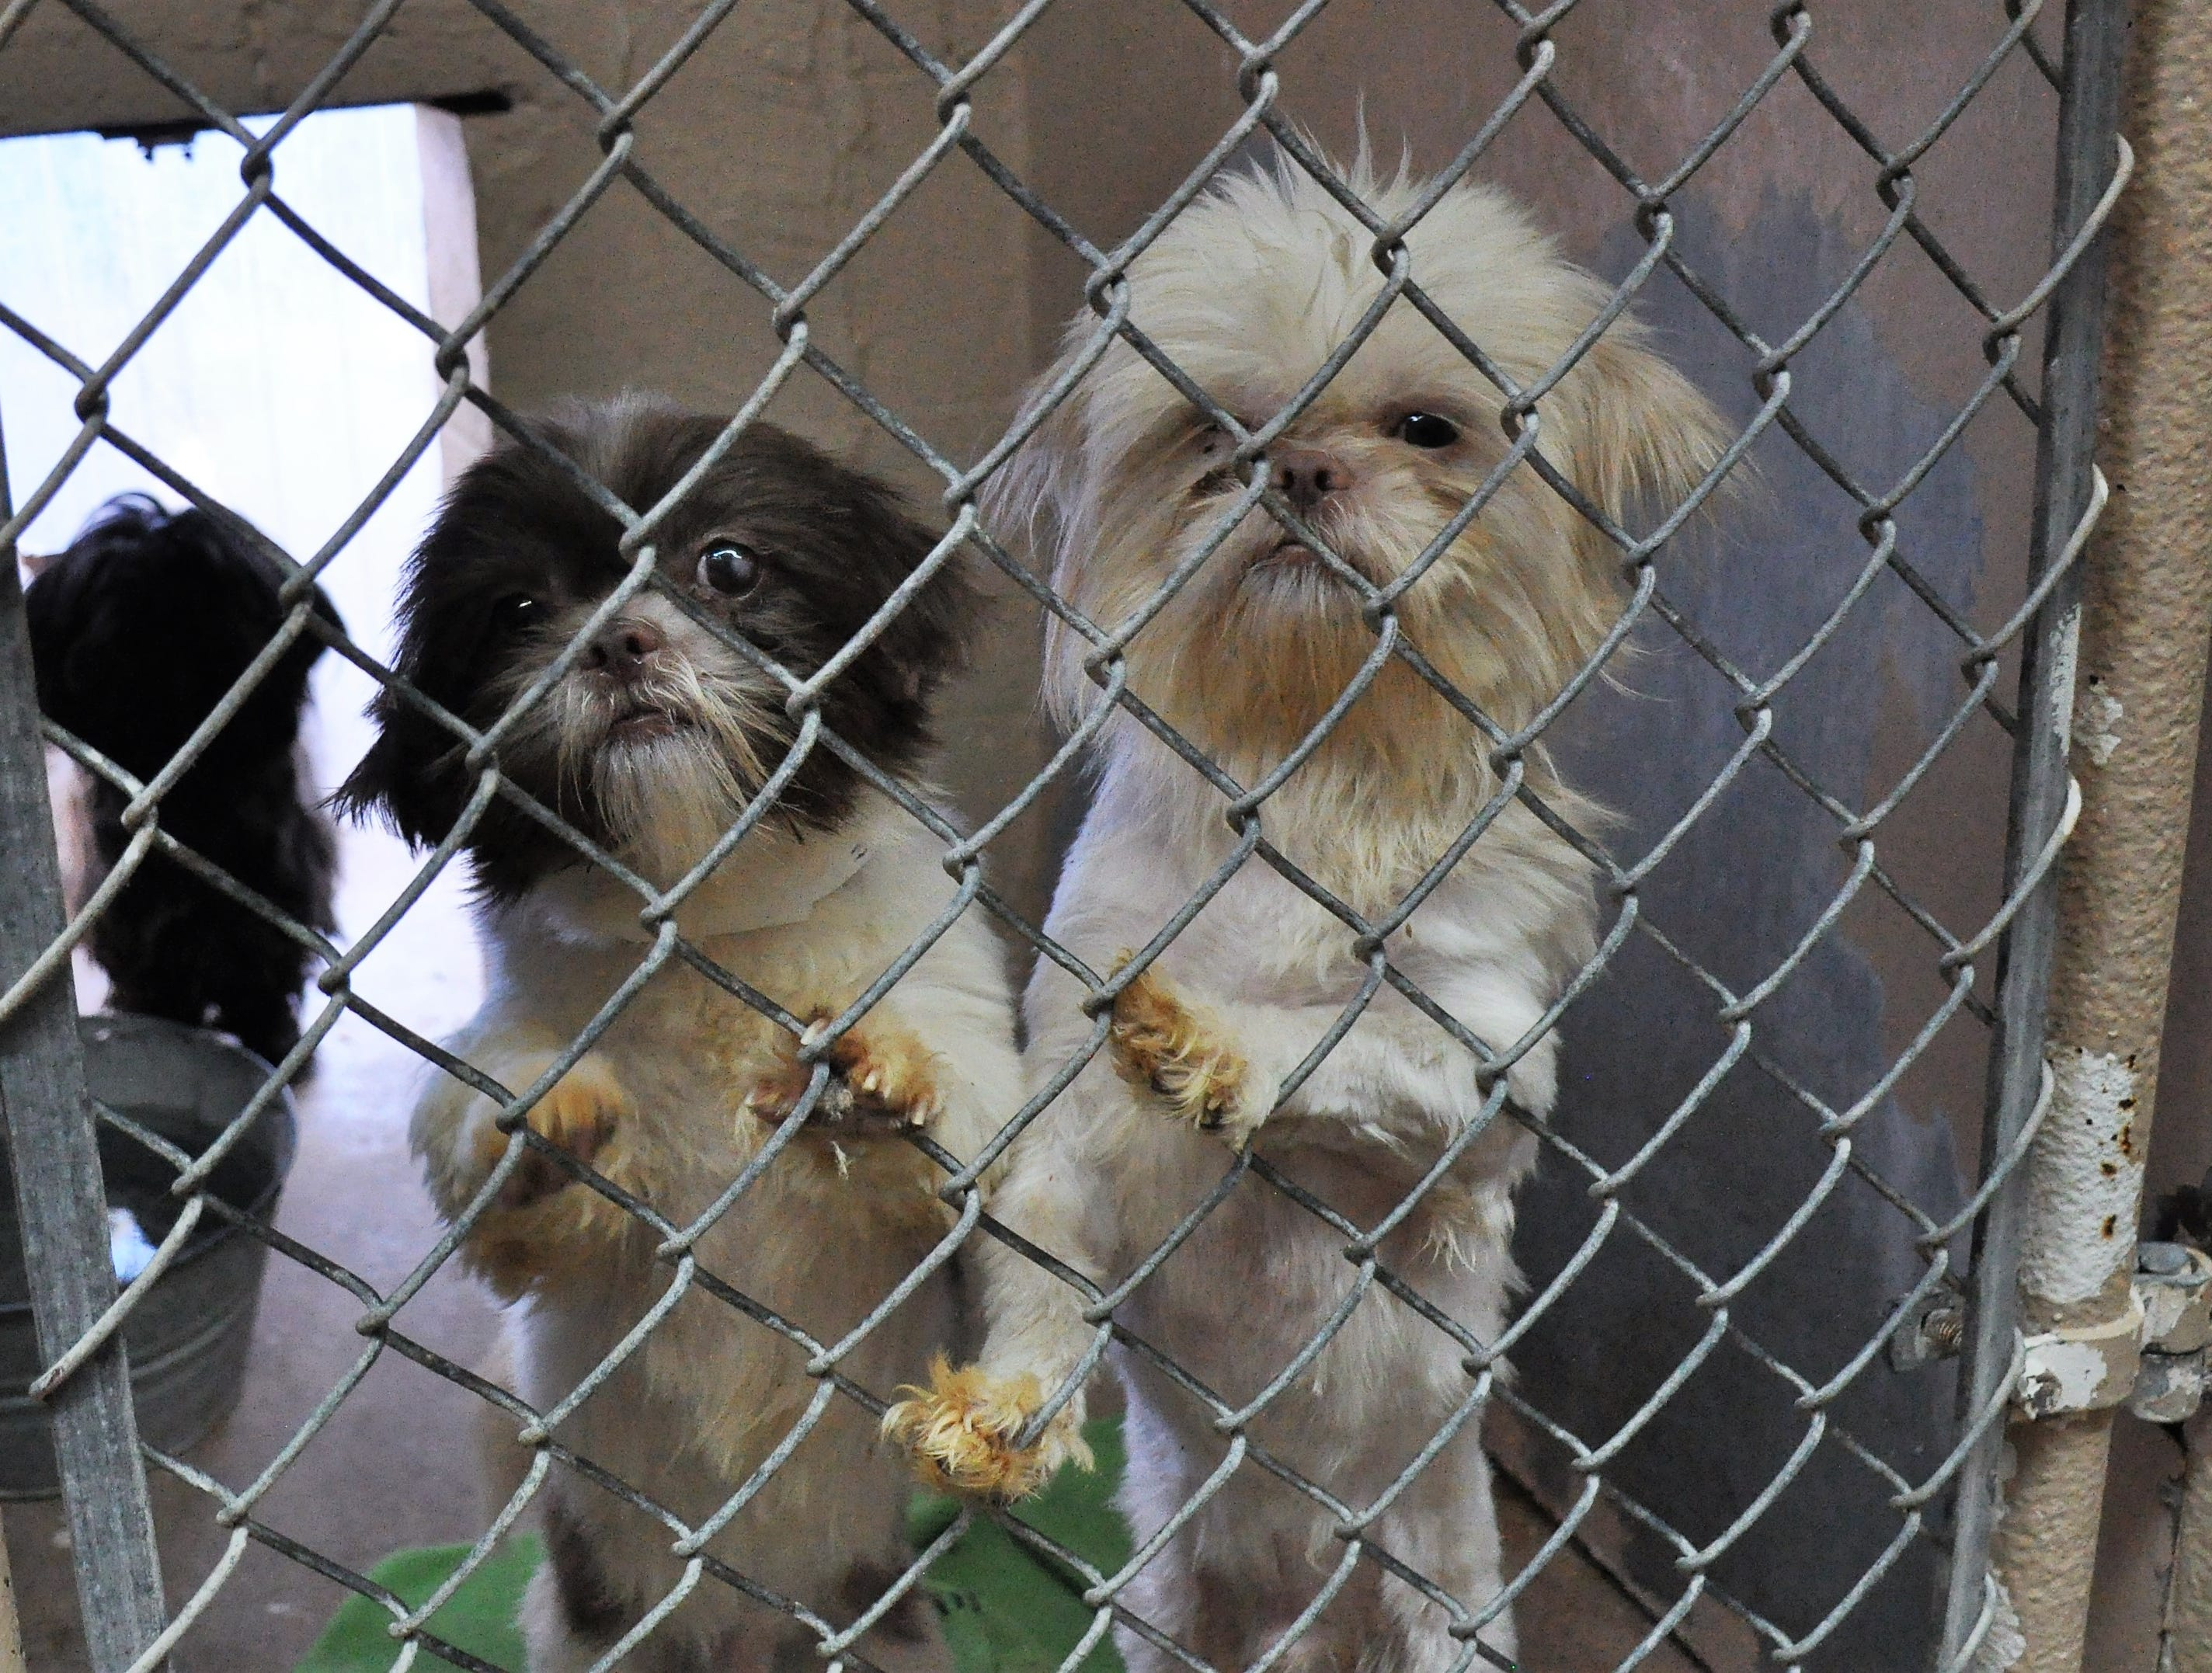 Several of the dogs rescued from a filthy house in Callahan County are now clean, doctored and living in clean conditions at Rescue the Animals on Monday, Nov. 19, 2018.